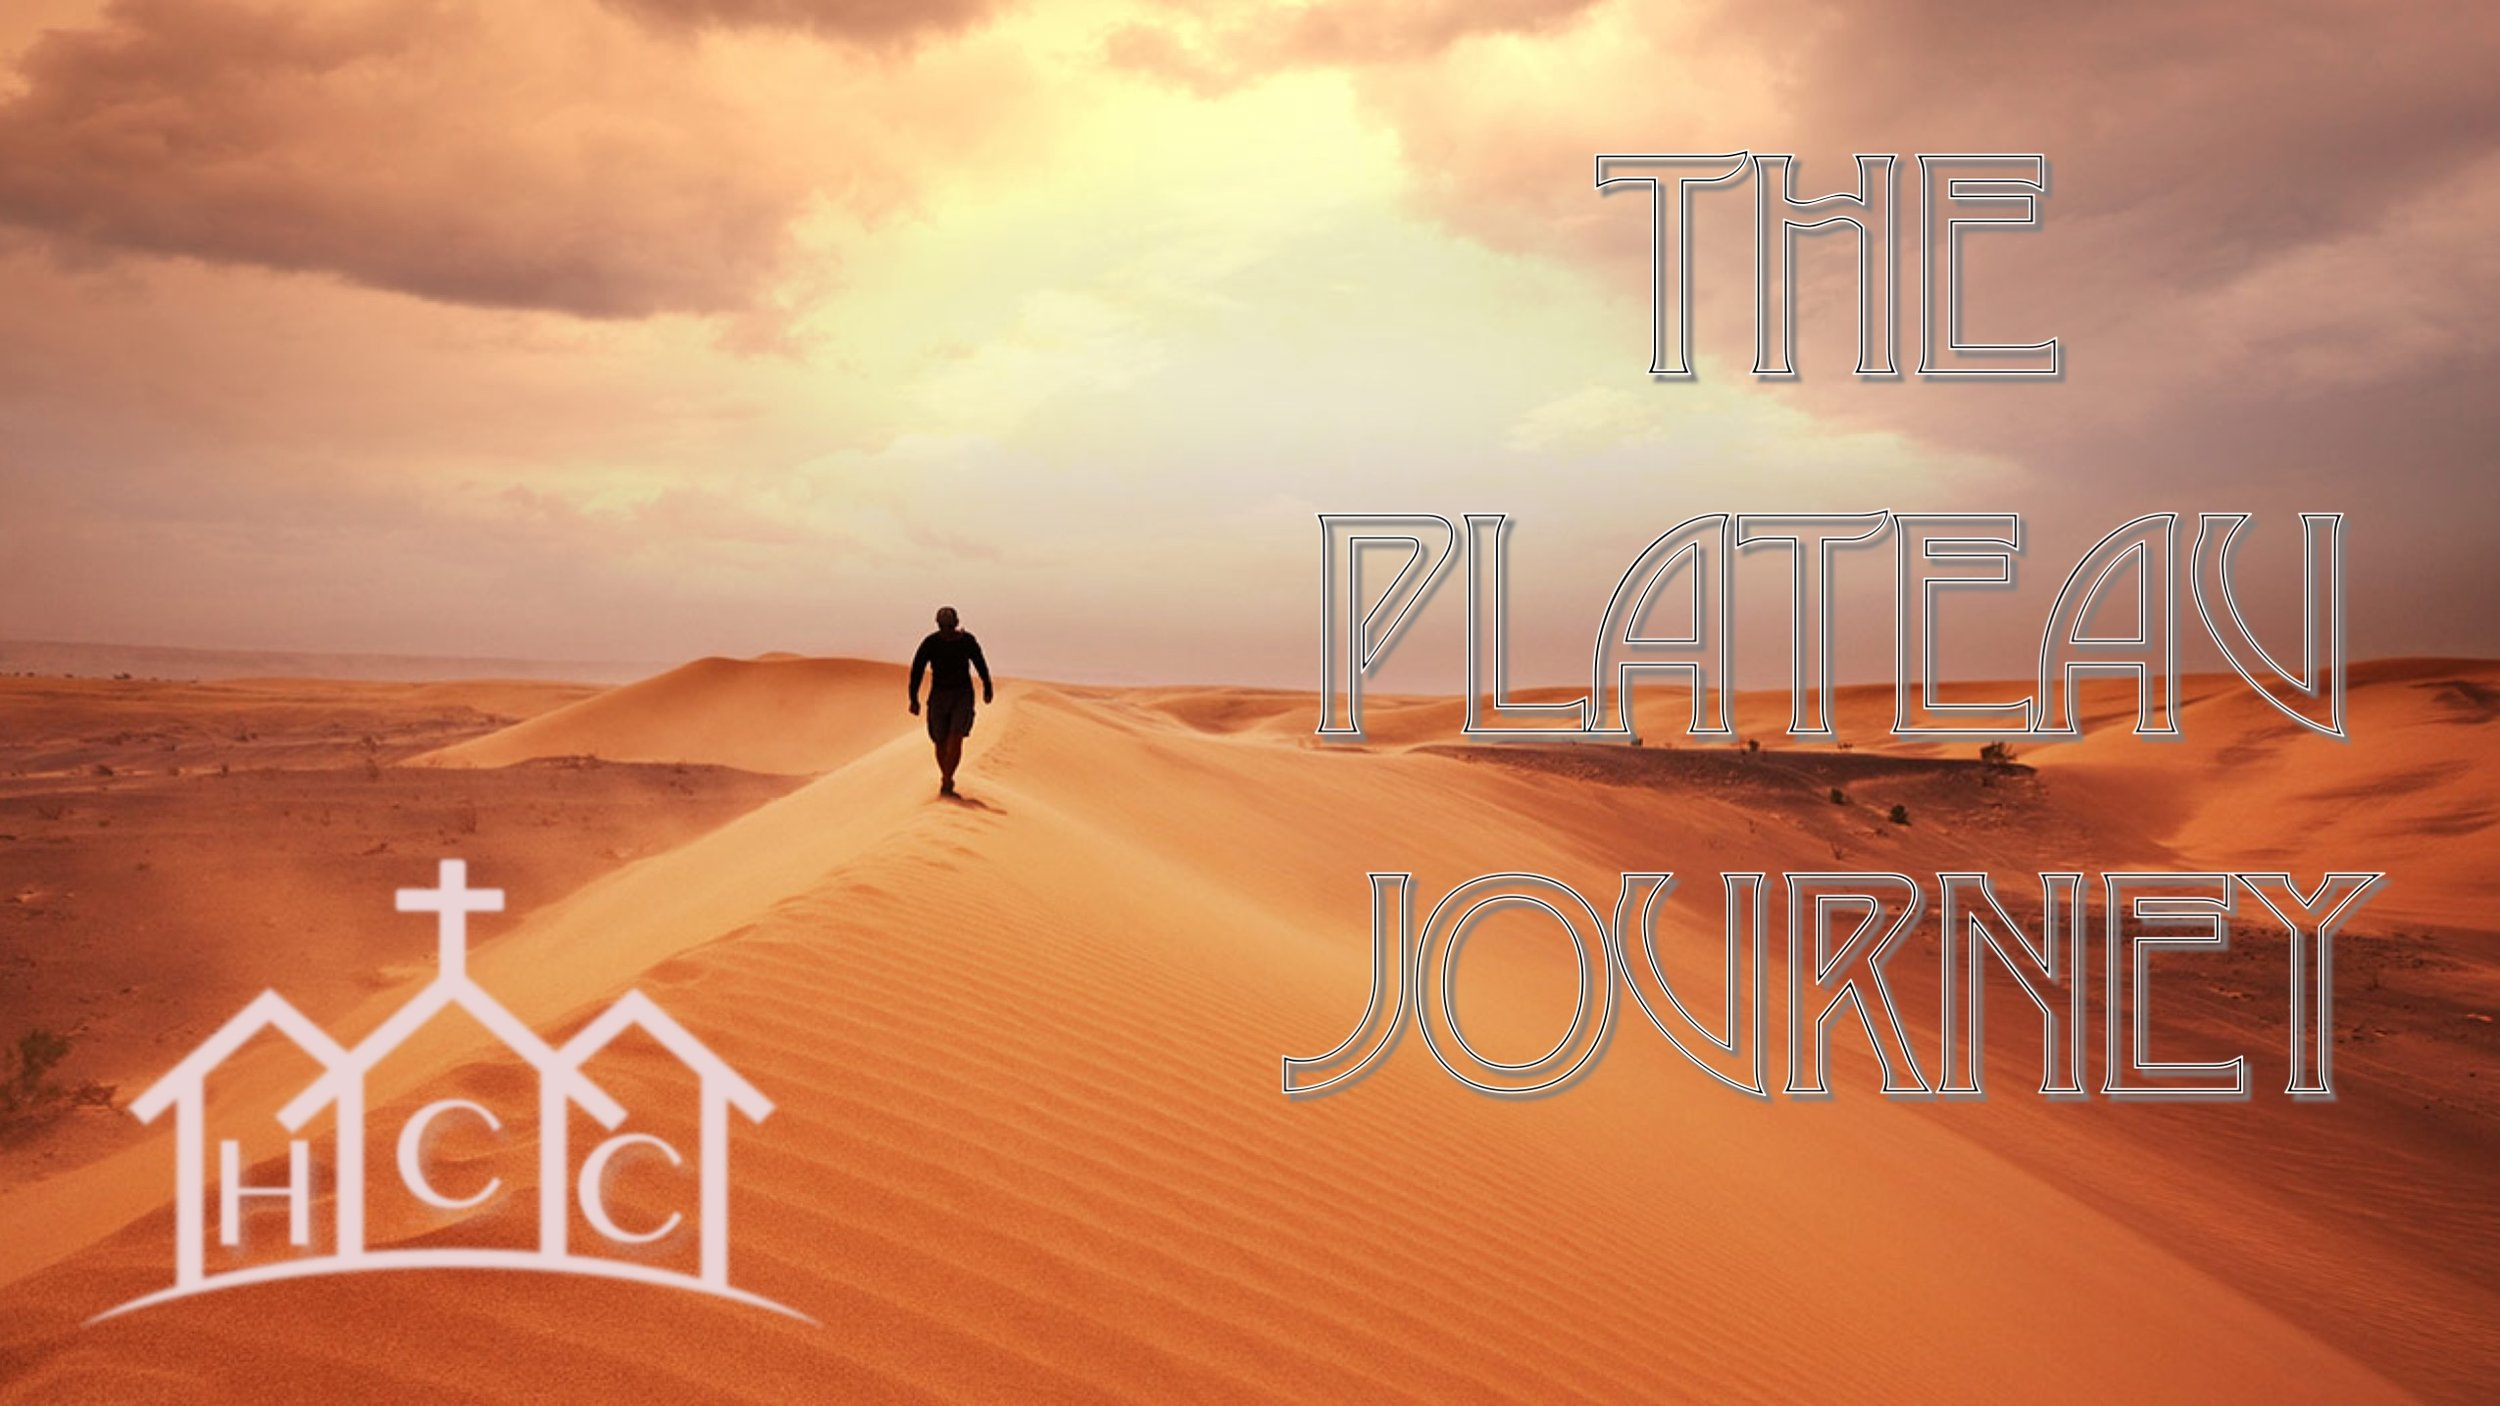 Journey on the Plateau.jpg